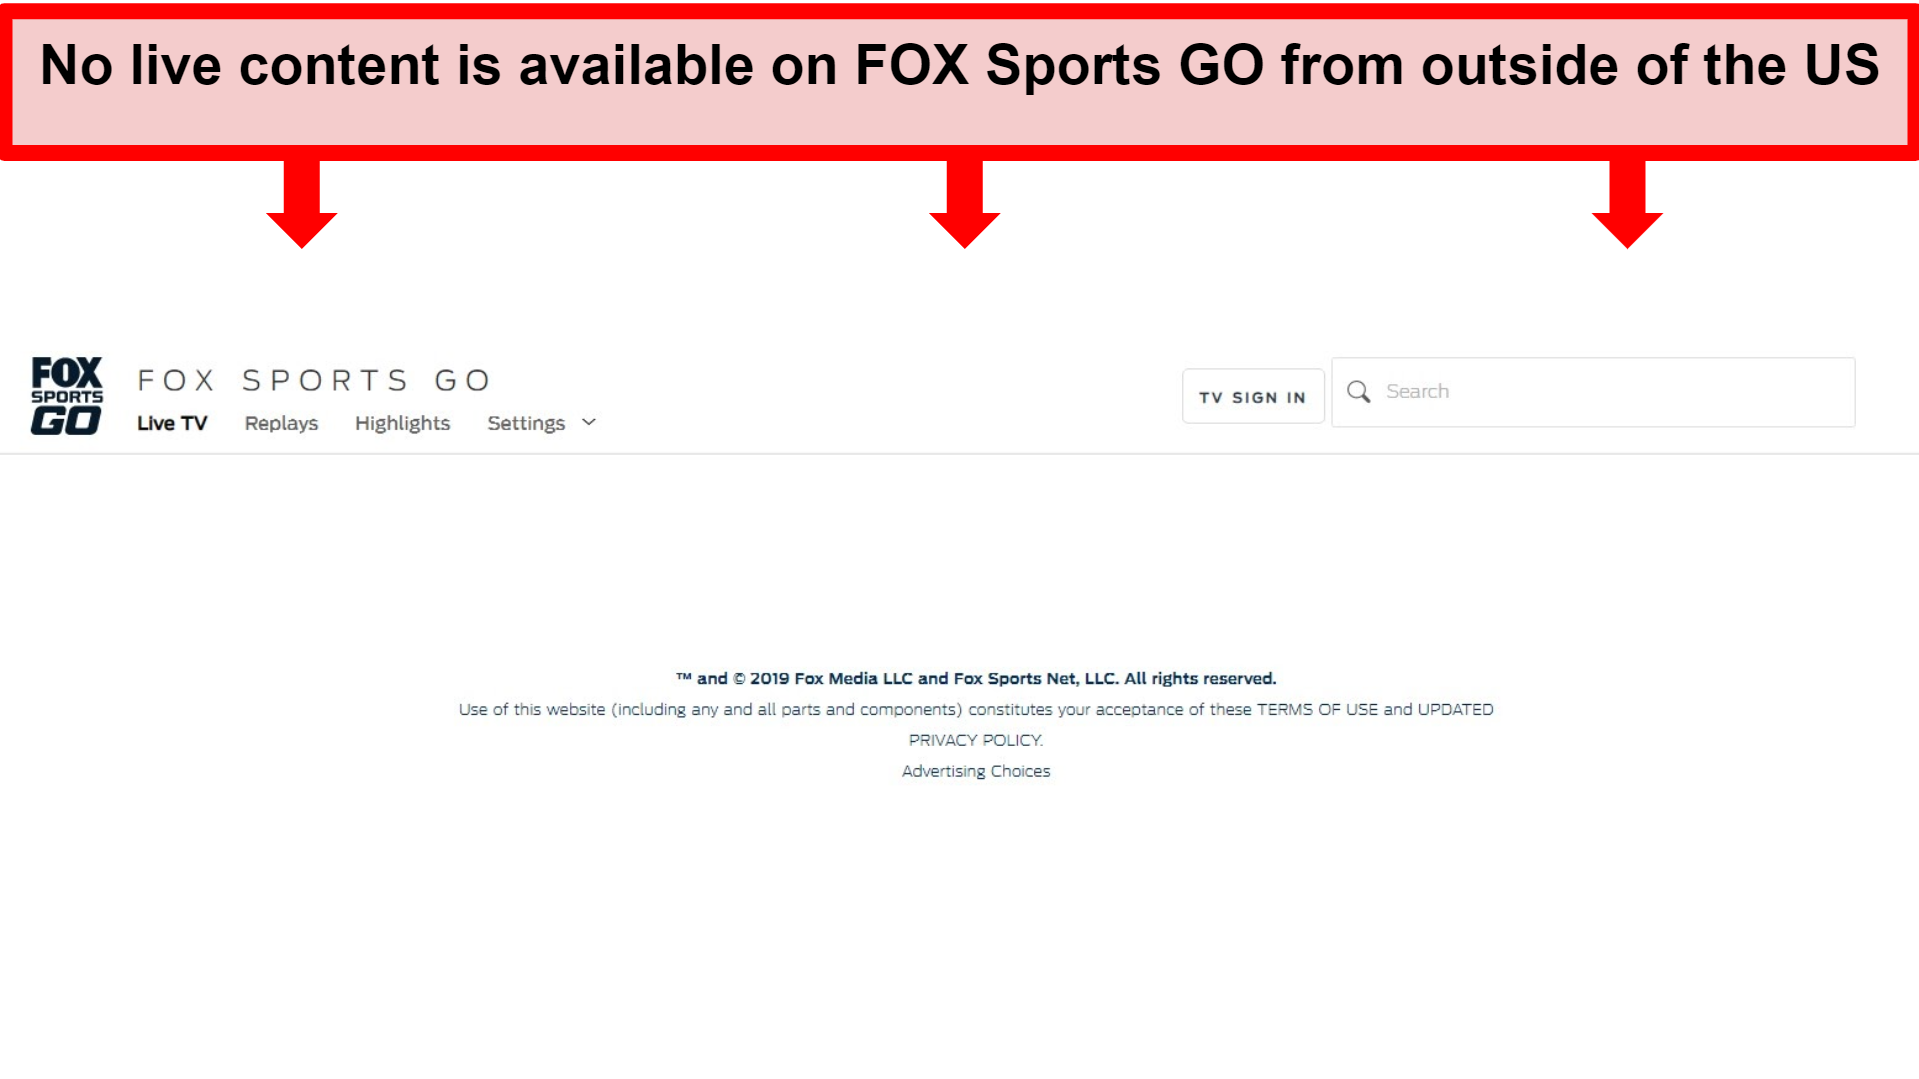 Screenshot of FOX Sports GO homepage with no content available